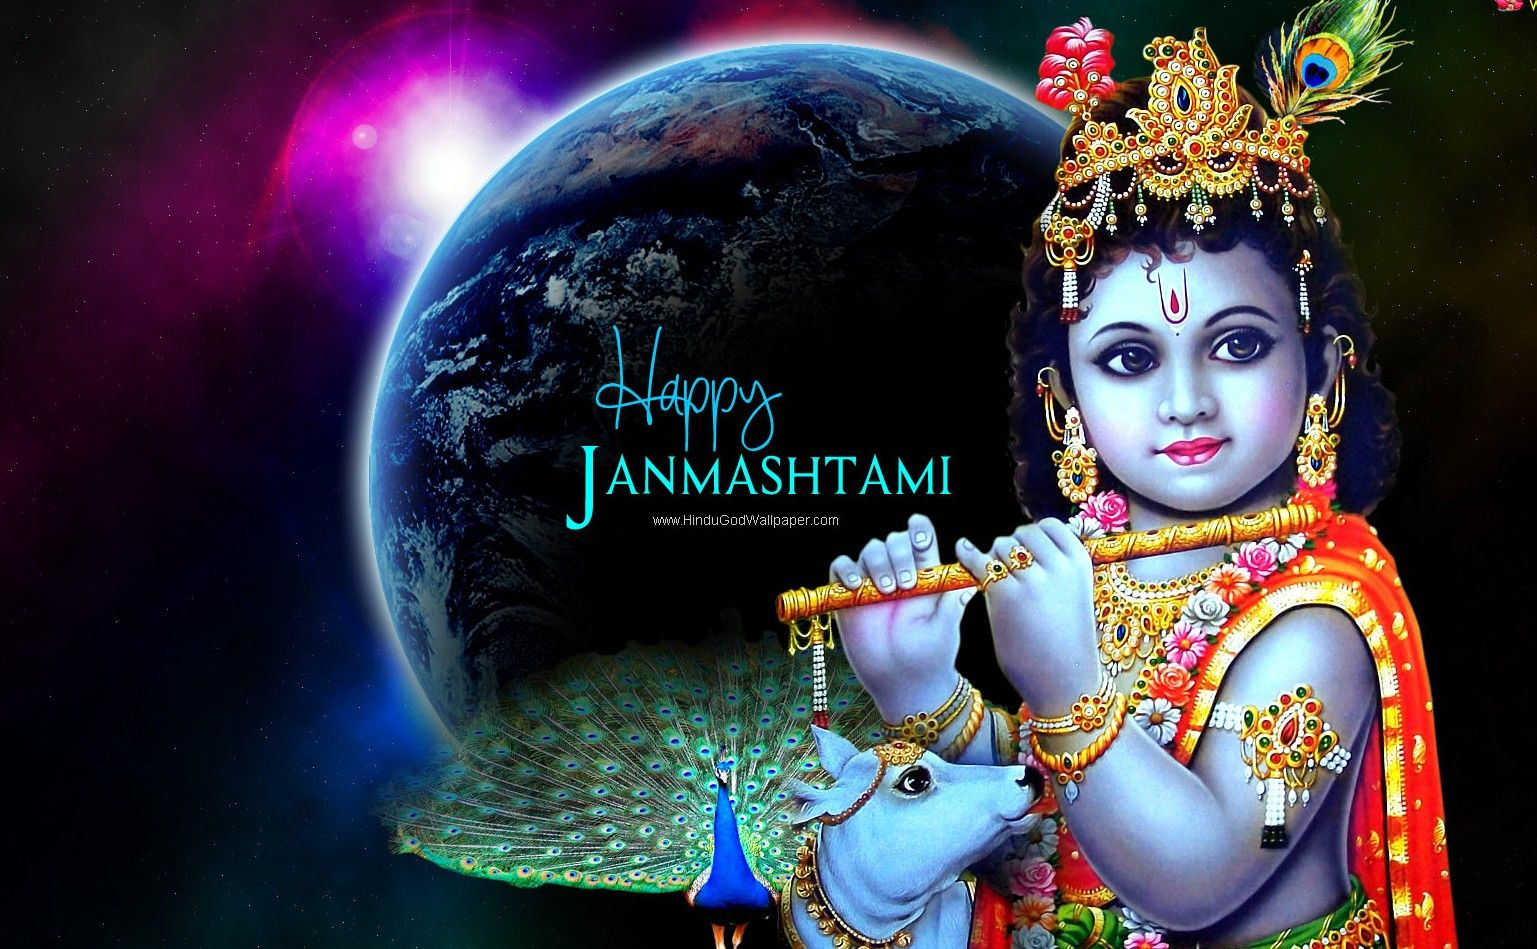 Happy Krishan Janmashtami Hd Wallpapers And Quotes With Krishan Hd Images Greetings Janmashtami Wallpapers Janmashtami Images Krishna Janmashtami